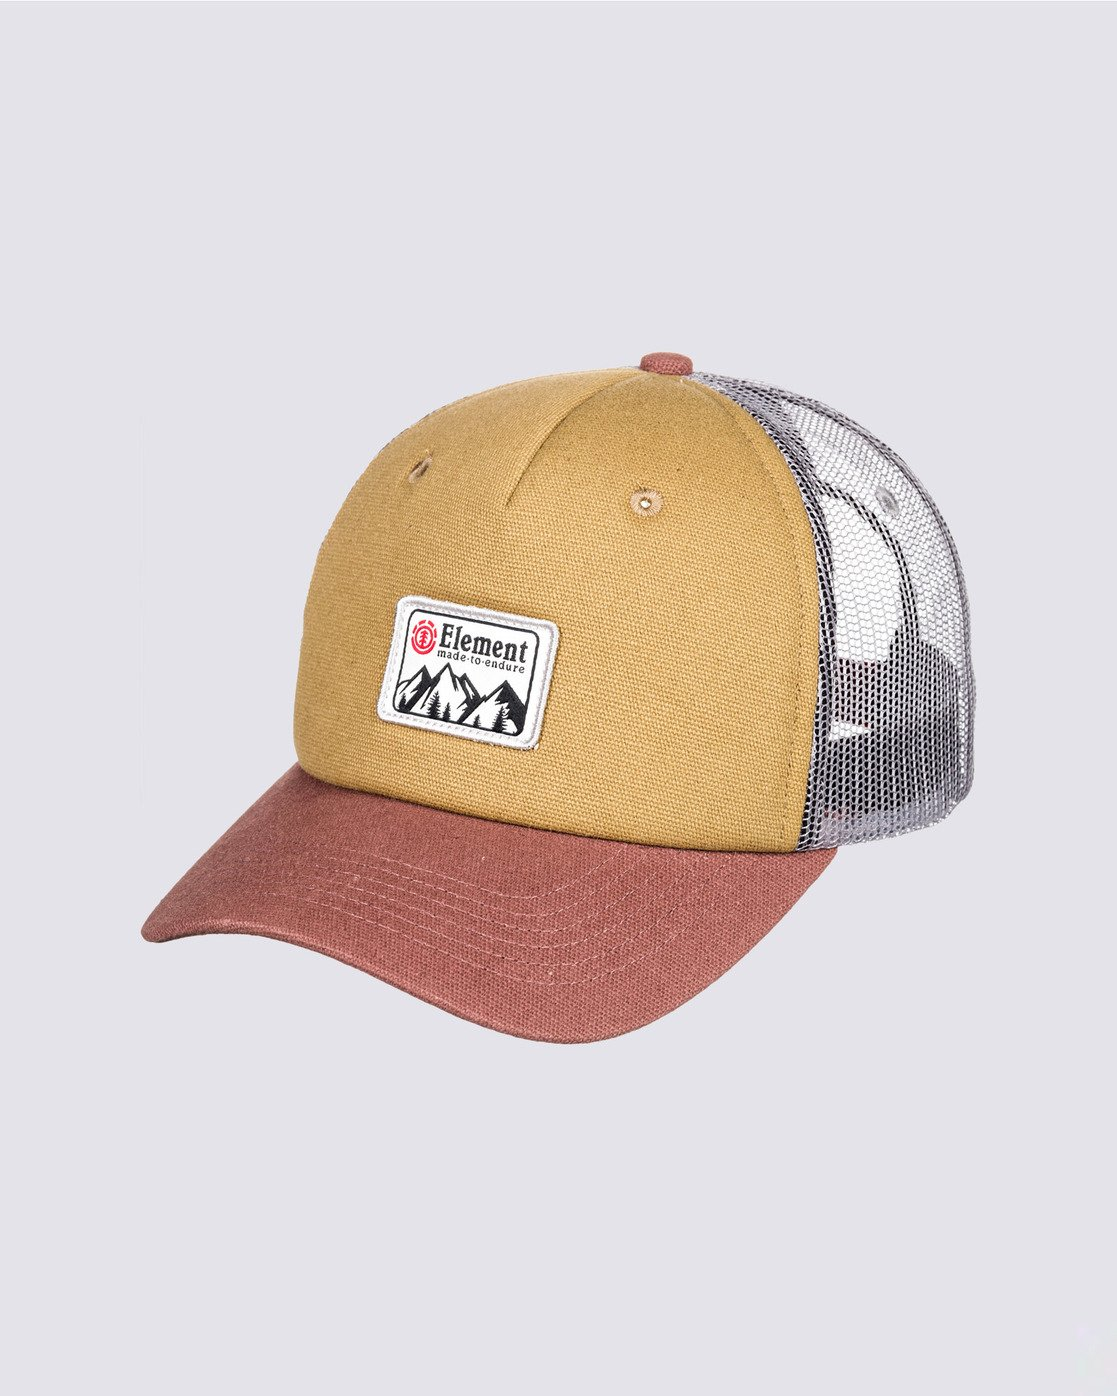 0 Icon Trucker Hat Brown MAHT3EIC Element